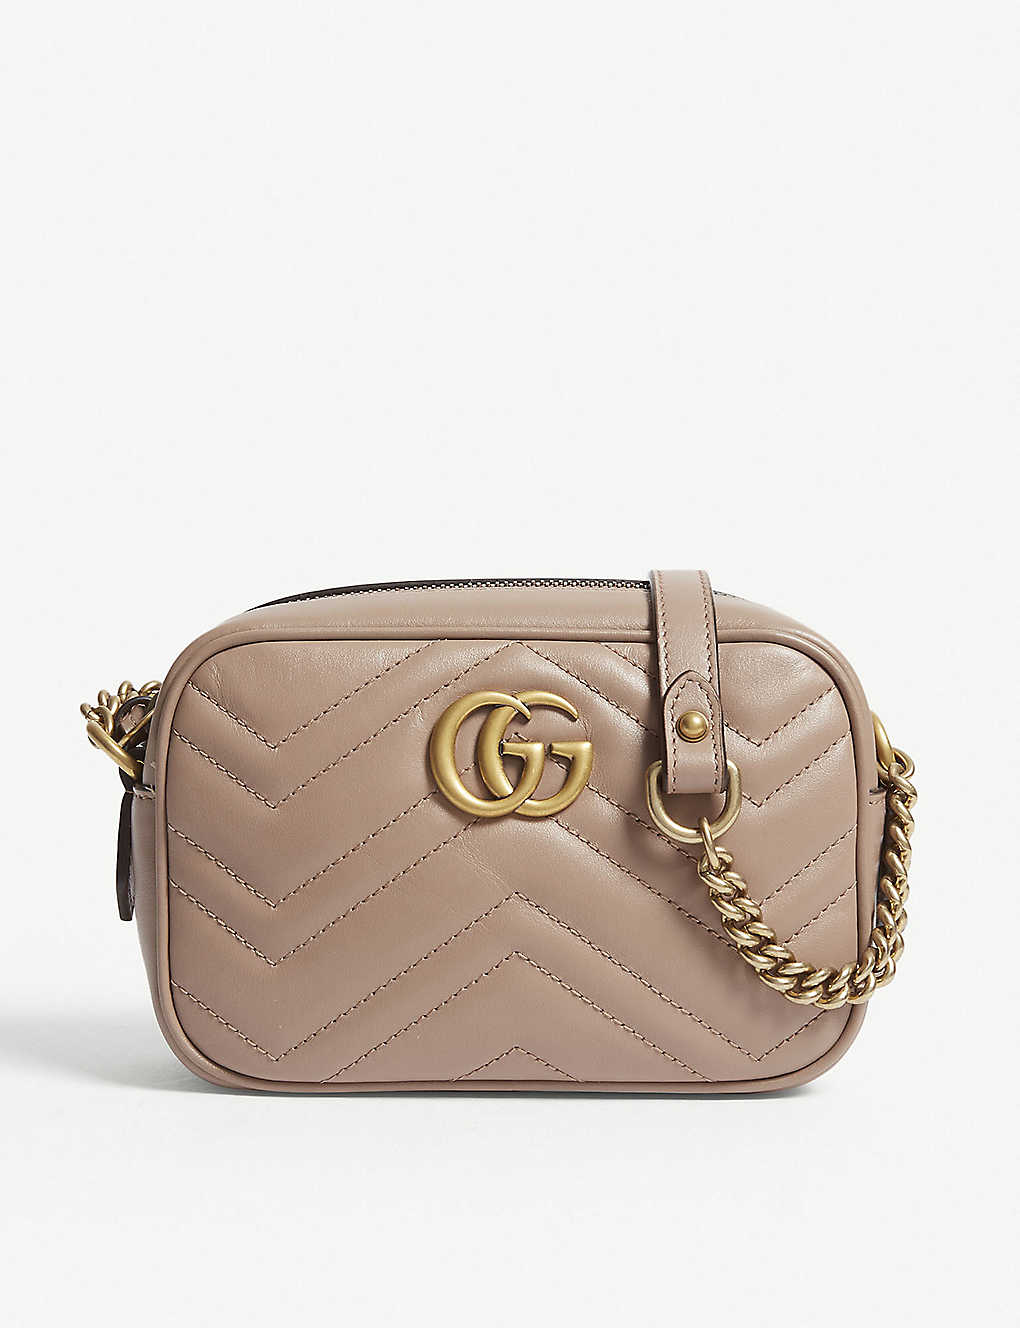 26305ef053f7 GUCCI - Marmont leather cross-body bag | Selfridges.com